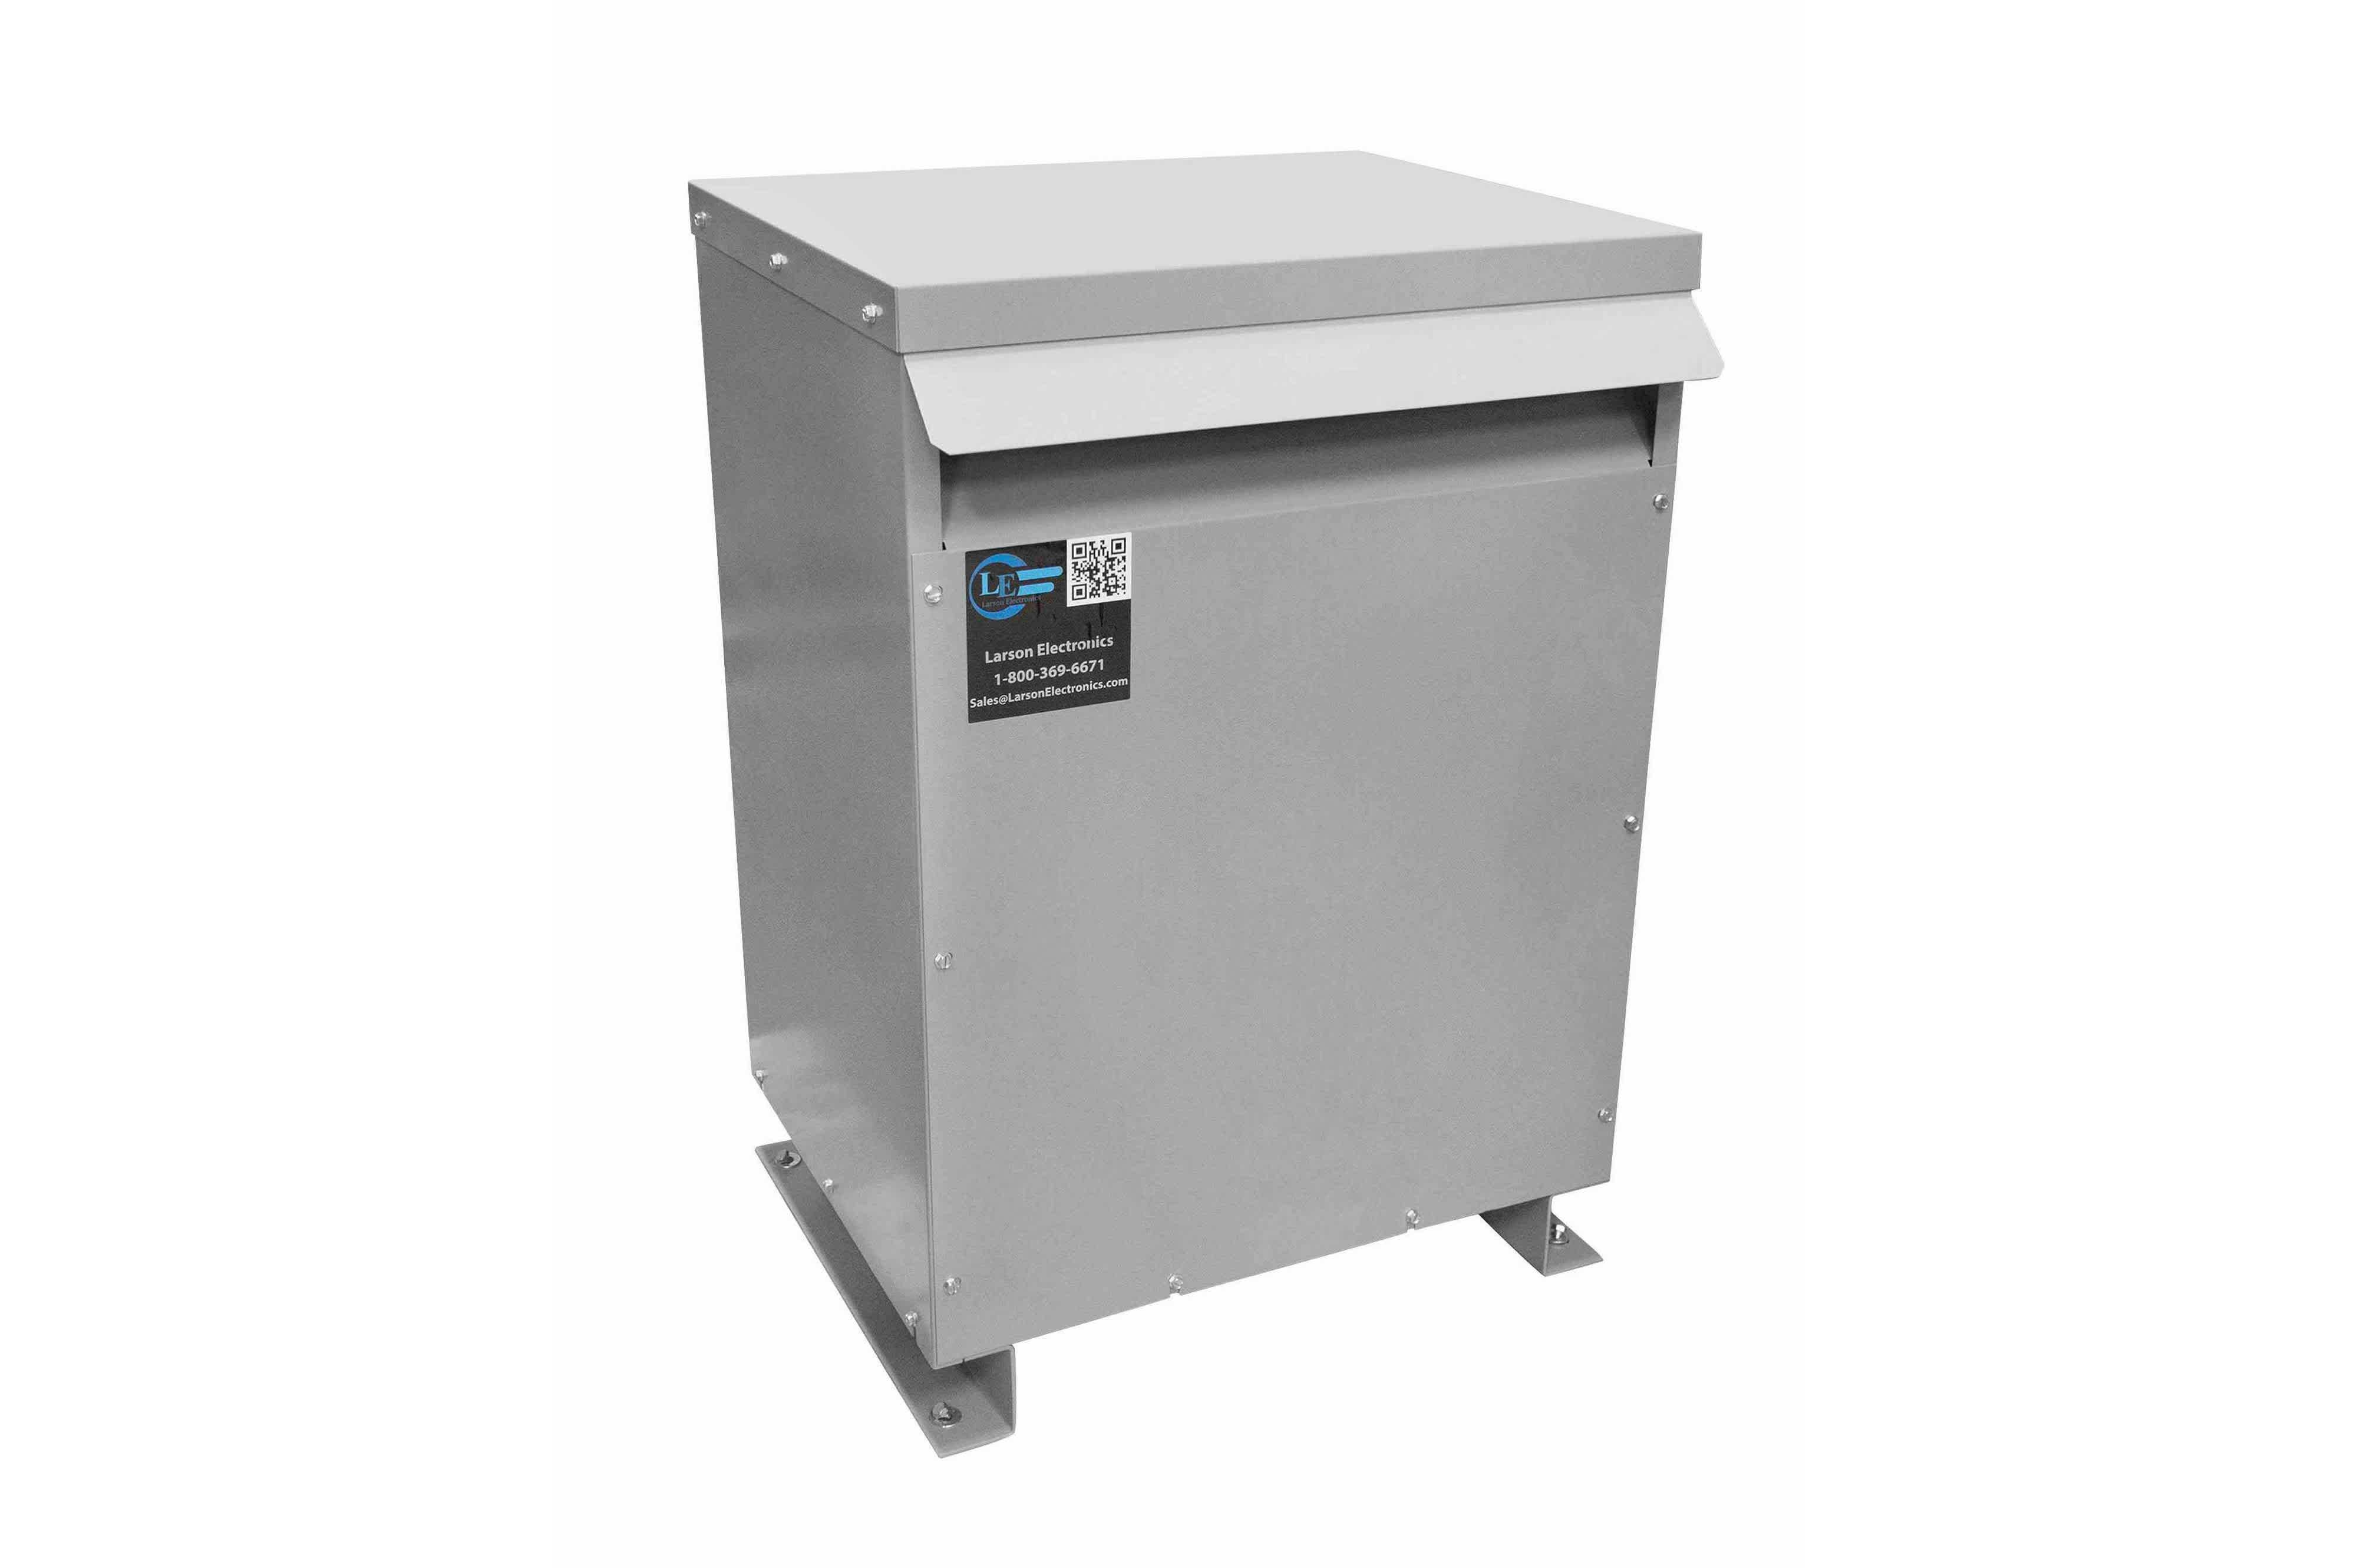 110 kVA 3PH Isolation Transformer, 600V Wye Primary, 208V Delta Secondary, N3R, Ventilated, 60 Hz